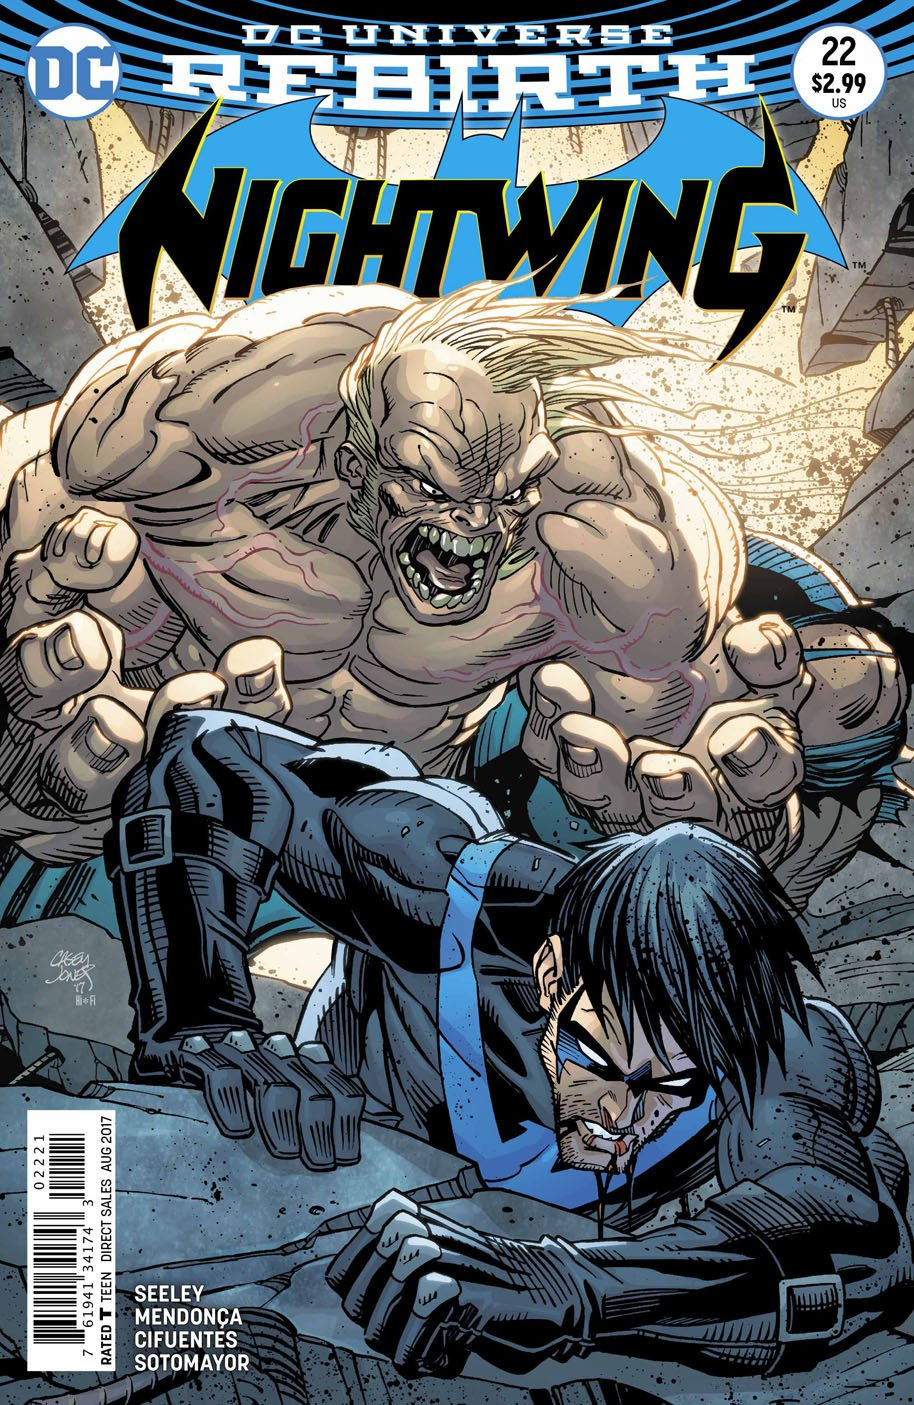 Nightwing 22 open order variant cover